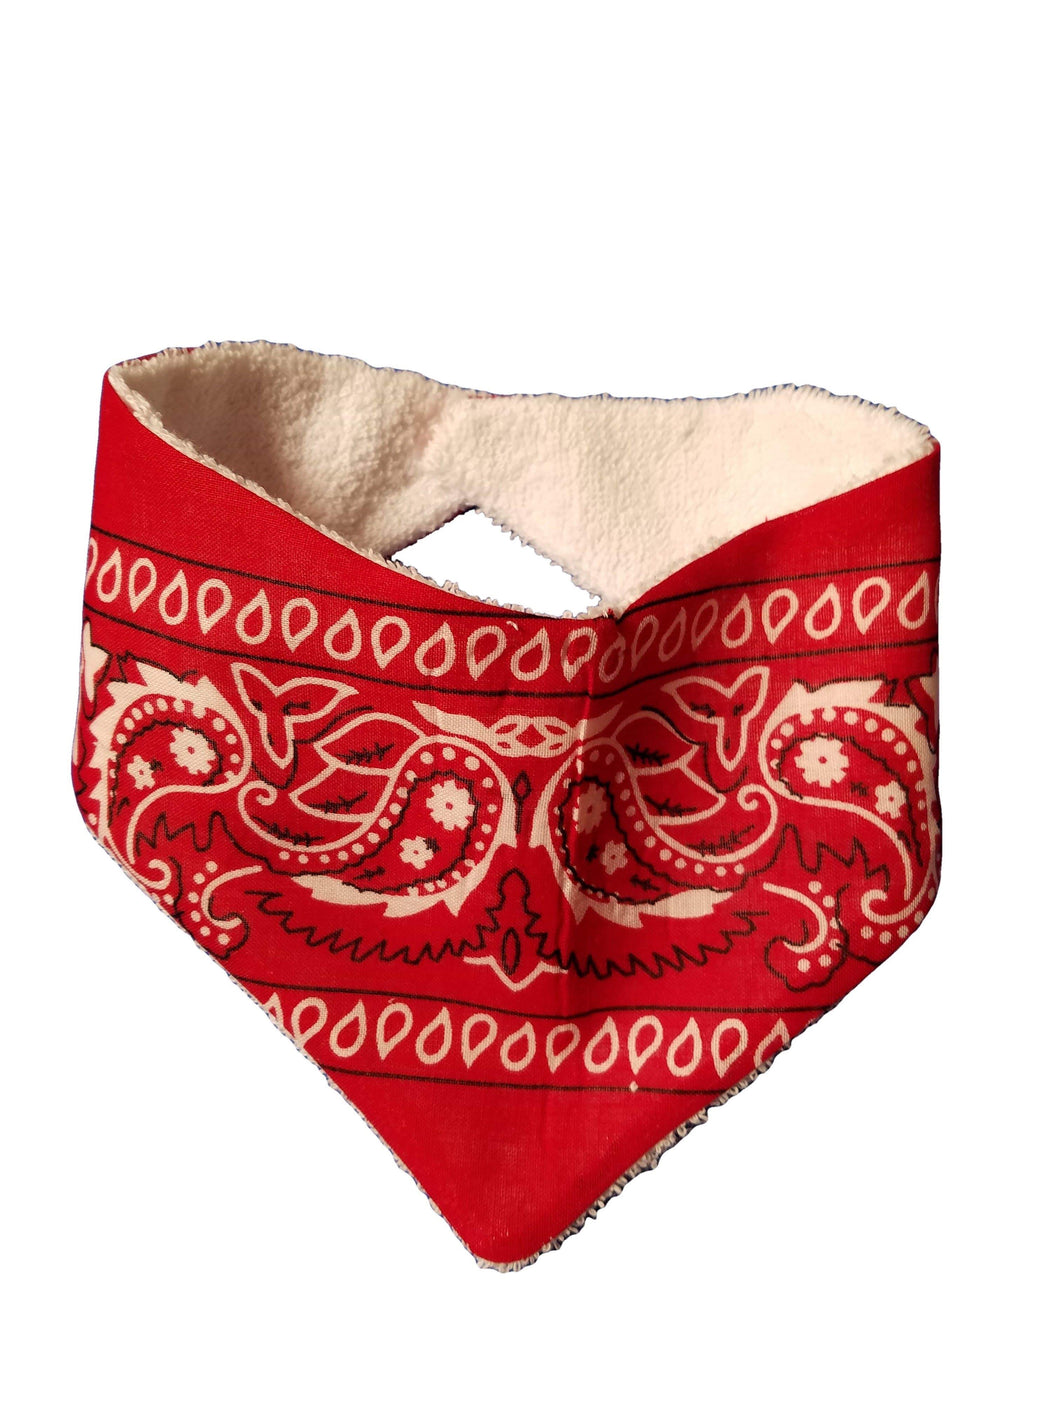 EZ-On BaBeez™ - Accessories - Kerchief - Red Bandana - Bib